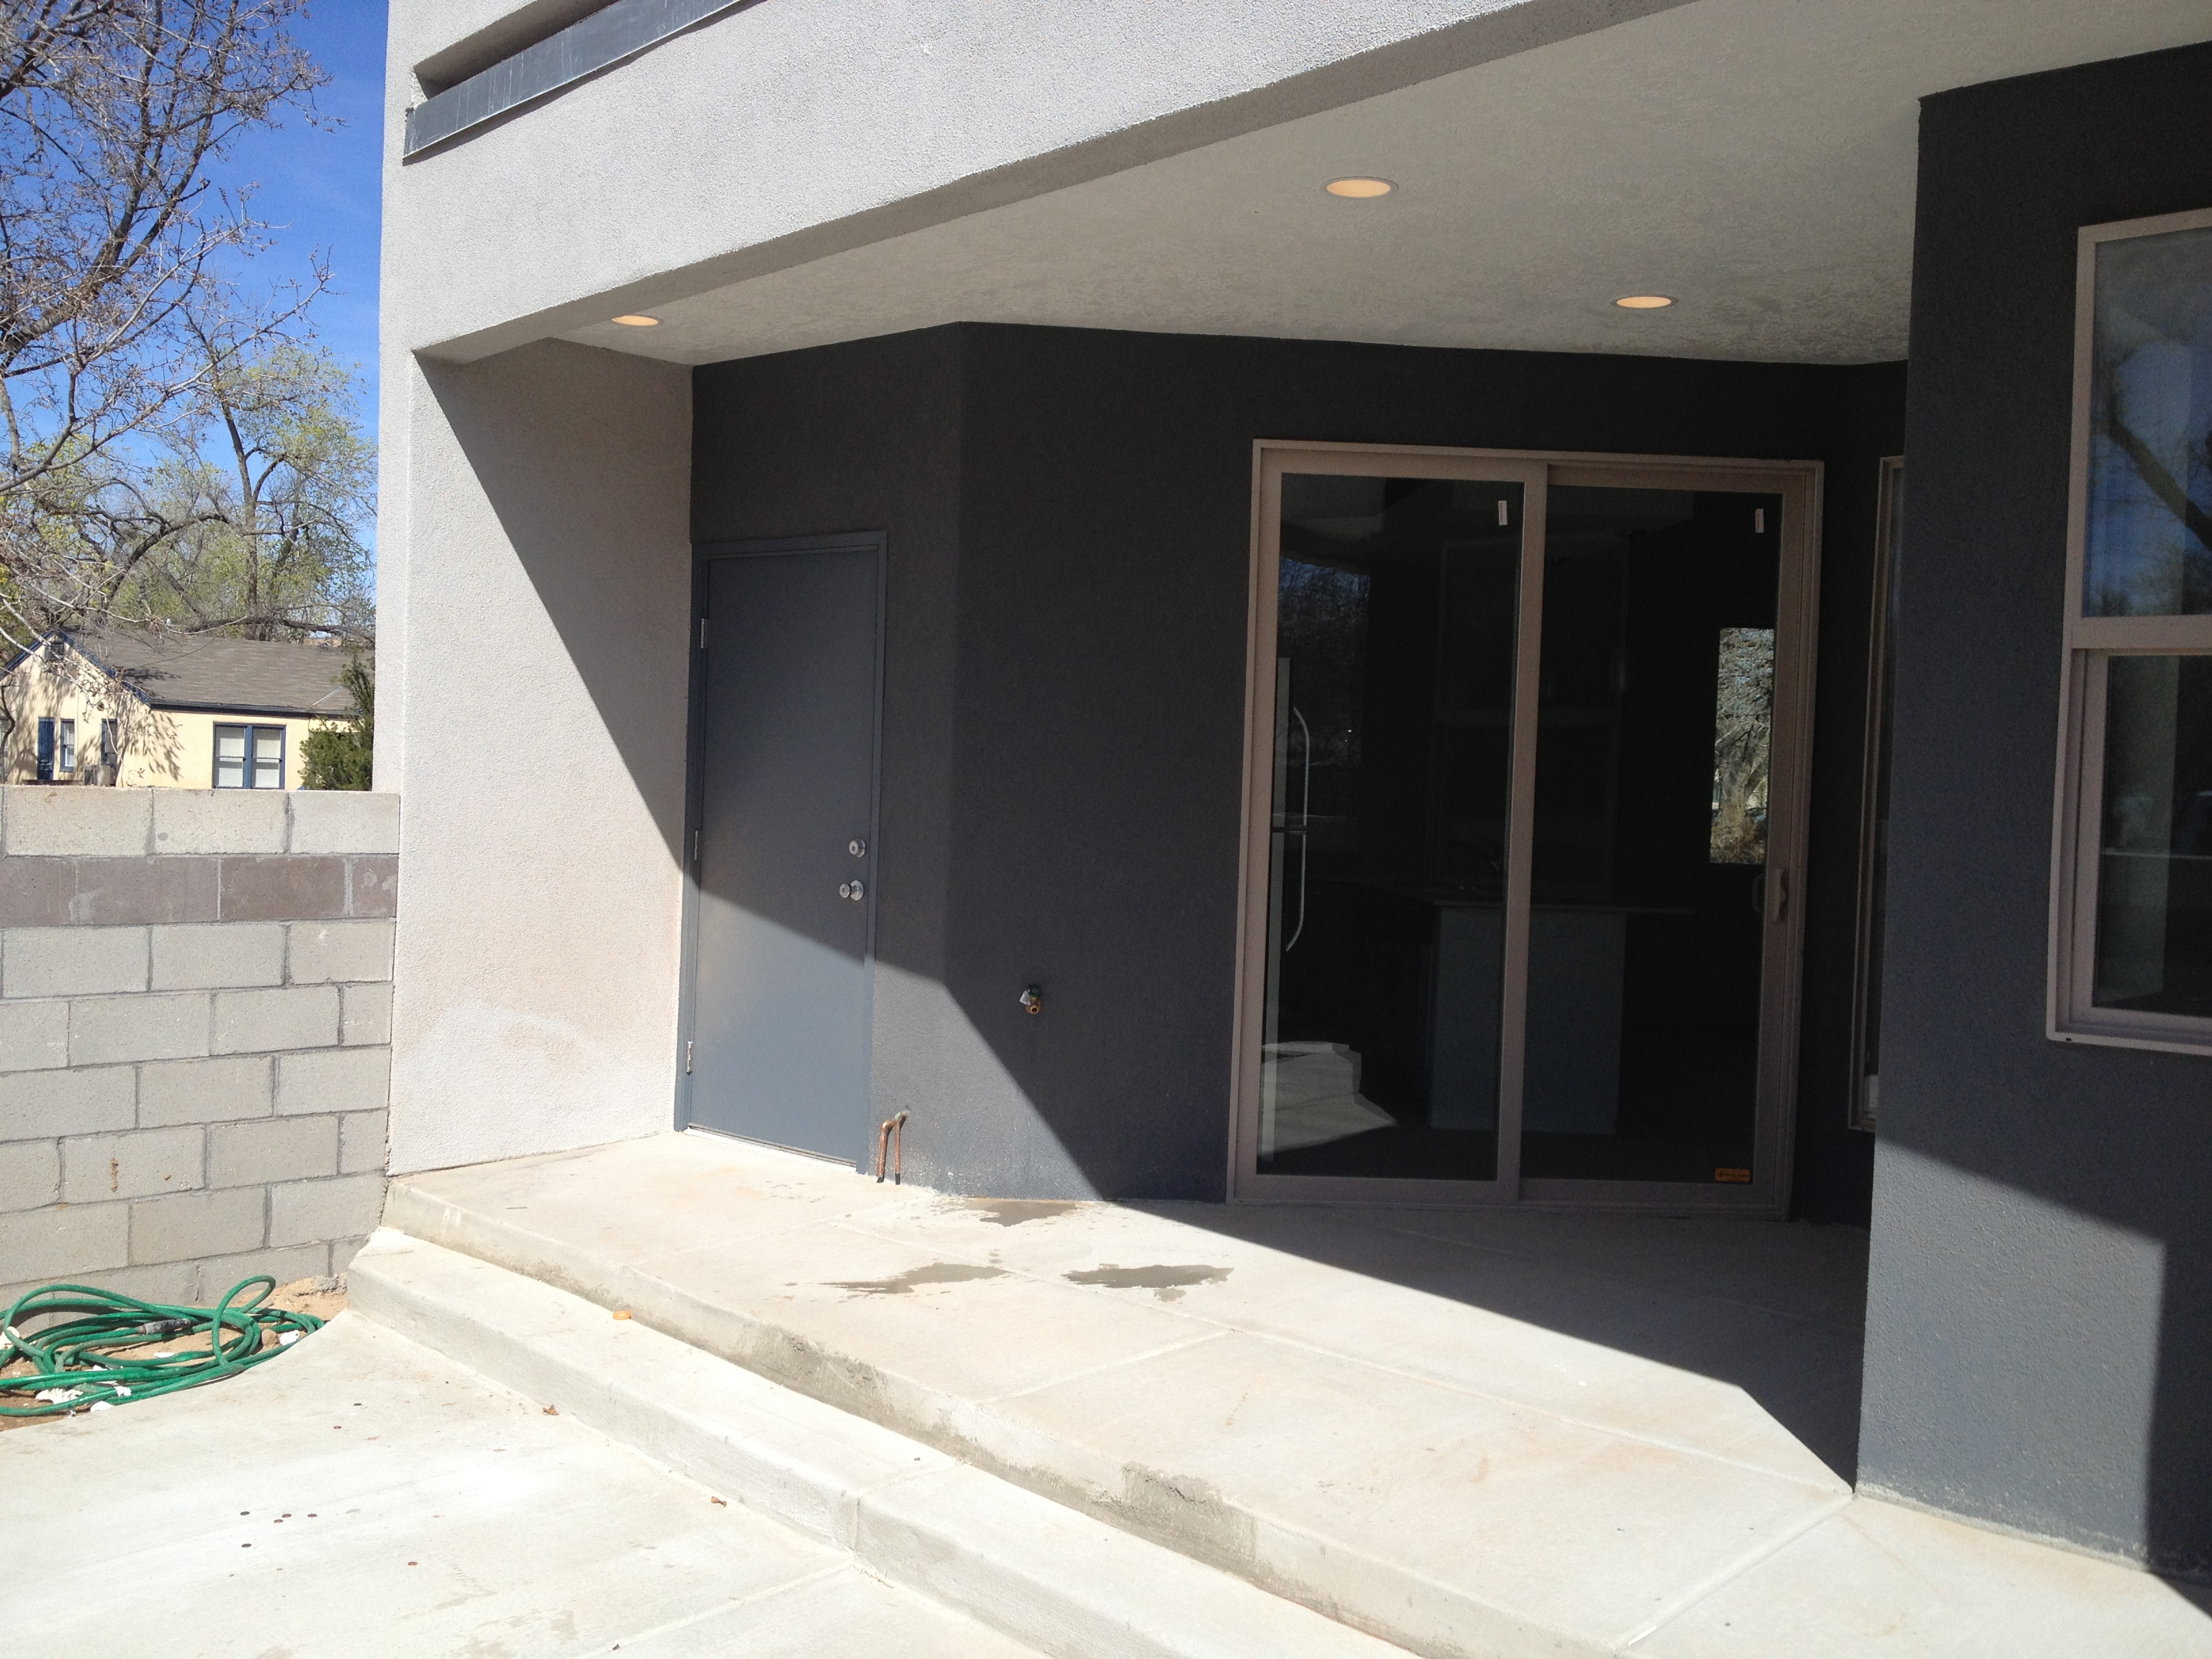 New Luxury Nob Hill Town Home Just 3 Blocks to ... - Albuquerque, NM 87106